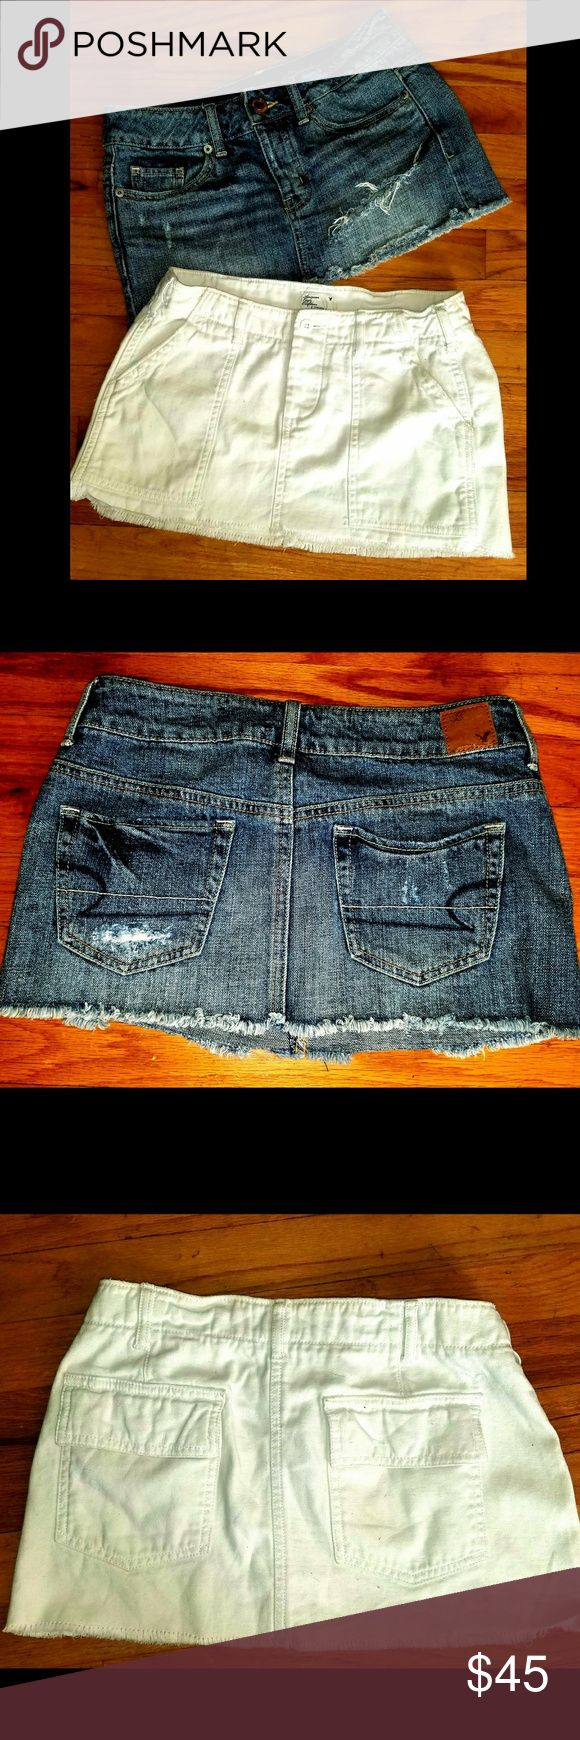 American Eagle jean mini skirts/XS Less thru pay??al or Merc  ( just ask me!)    Super cute American Eagle jean mini skirts.One is Jean colored & the other white! Like new condition. Size 0   2 for $45 or $28 a piece! American Eagle Outfitters Skirts Mini